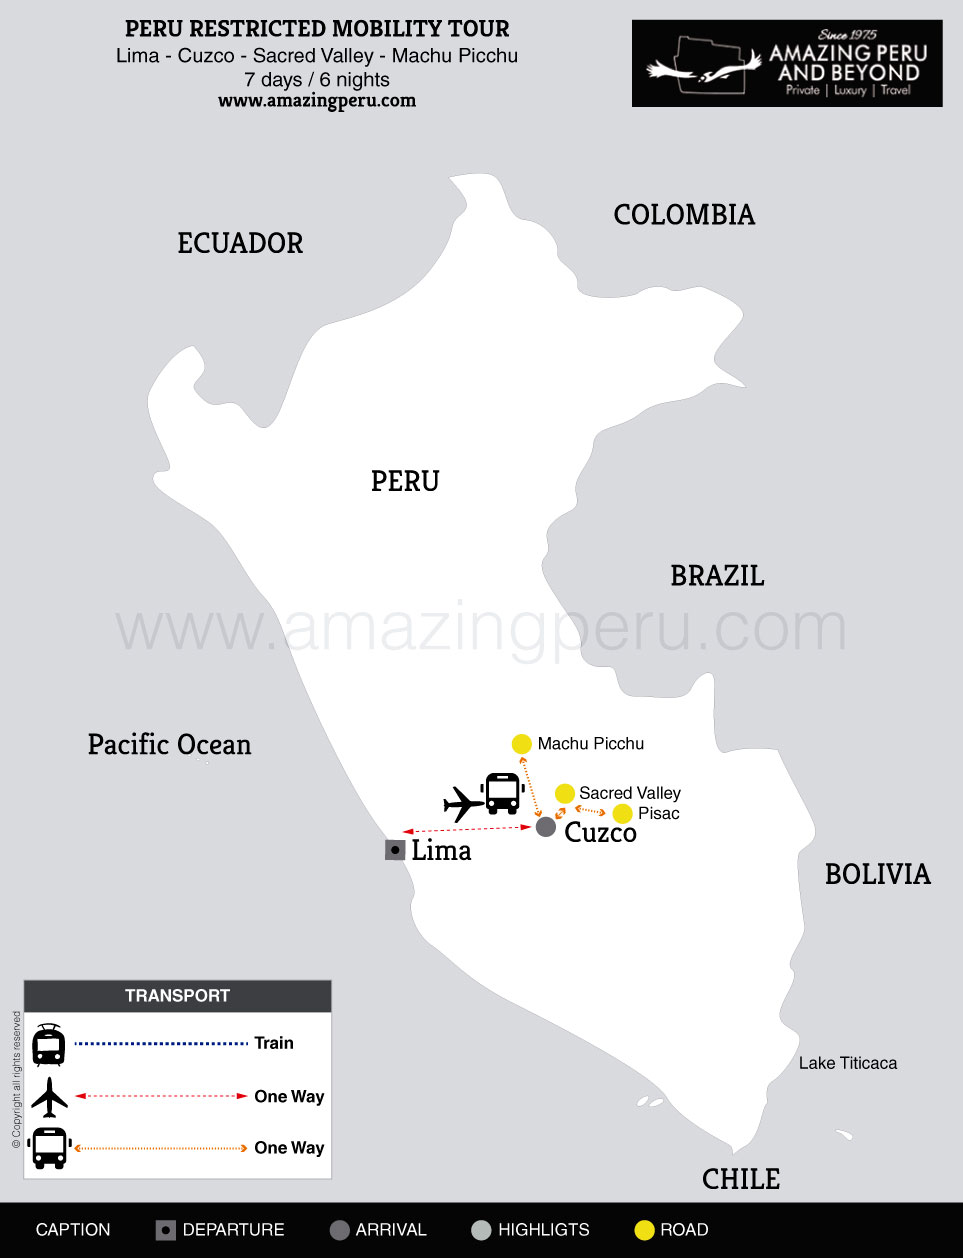 2020 Peru Restricted Mobility Tour - 7 days / 6 nights.